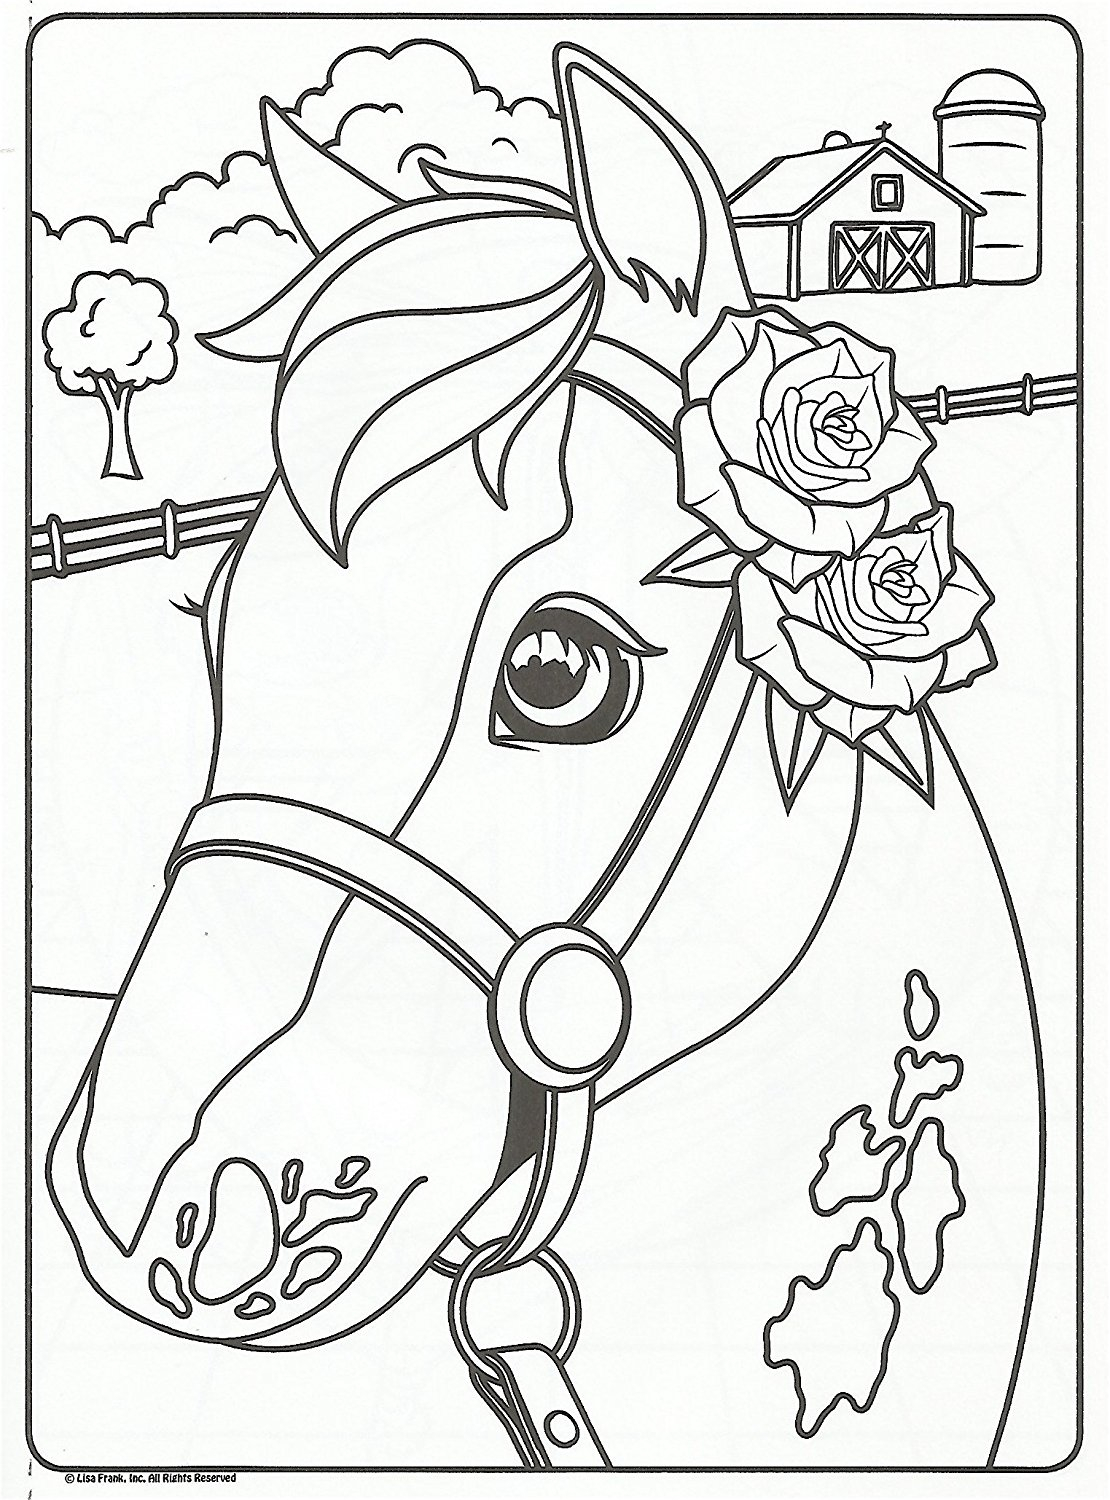 Little Puppy Coloring Pages Coloring Pages Free Printable Coloring Pages For Adults Sheets